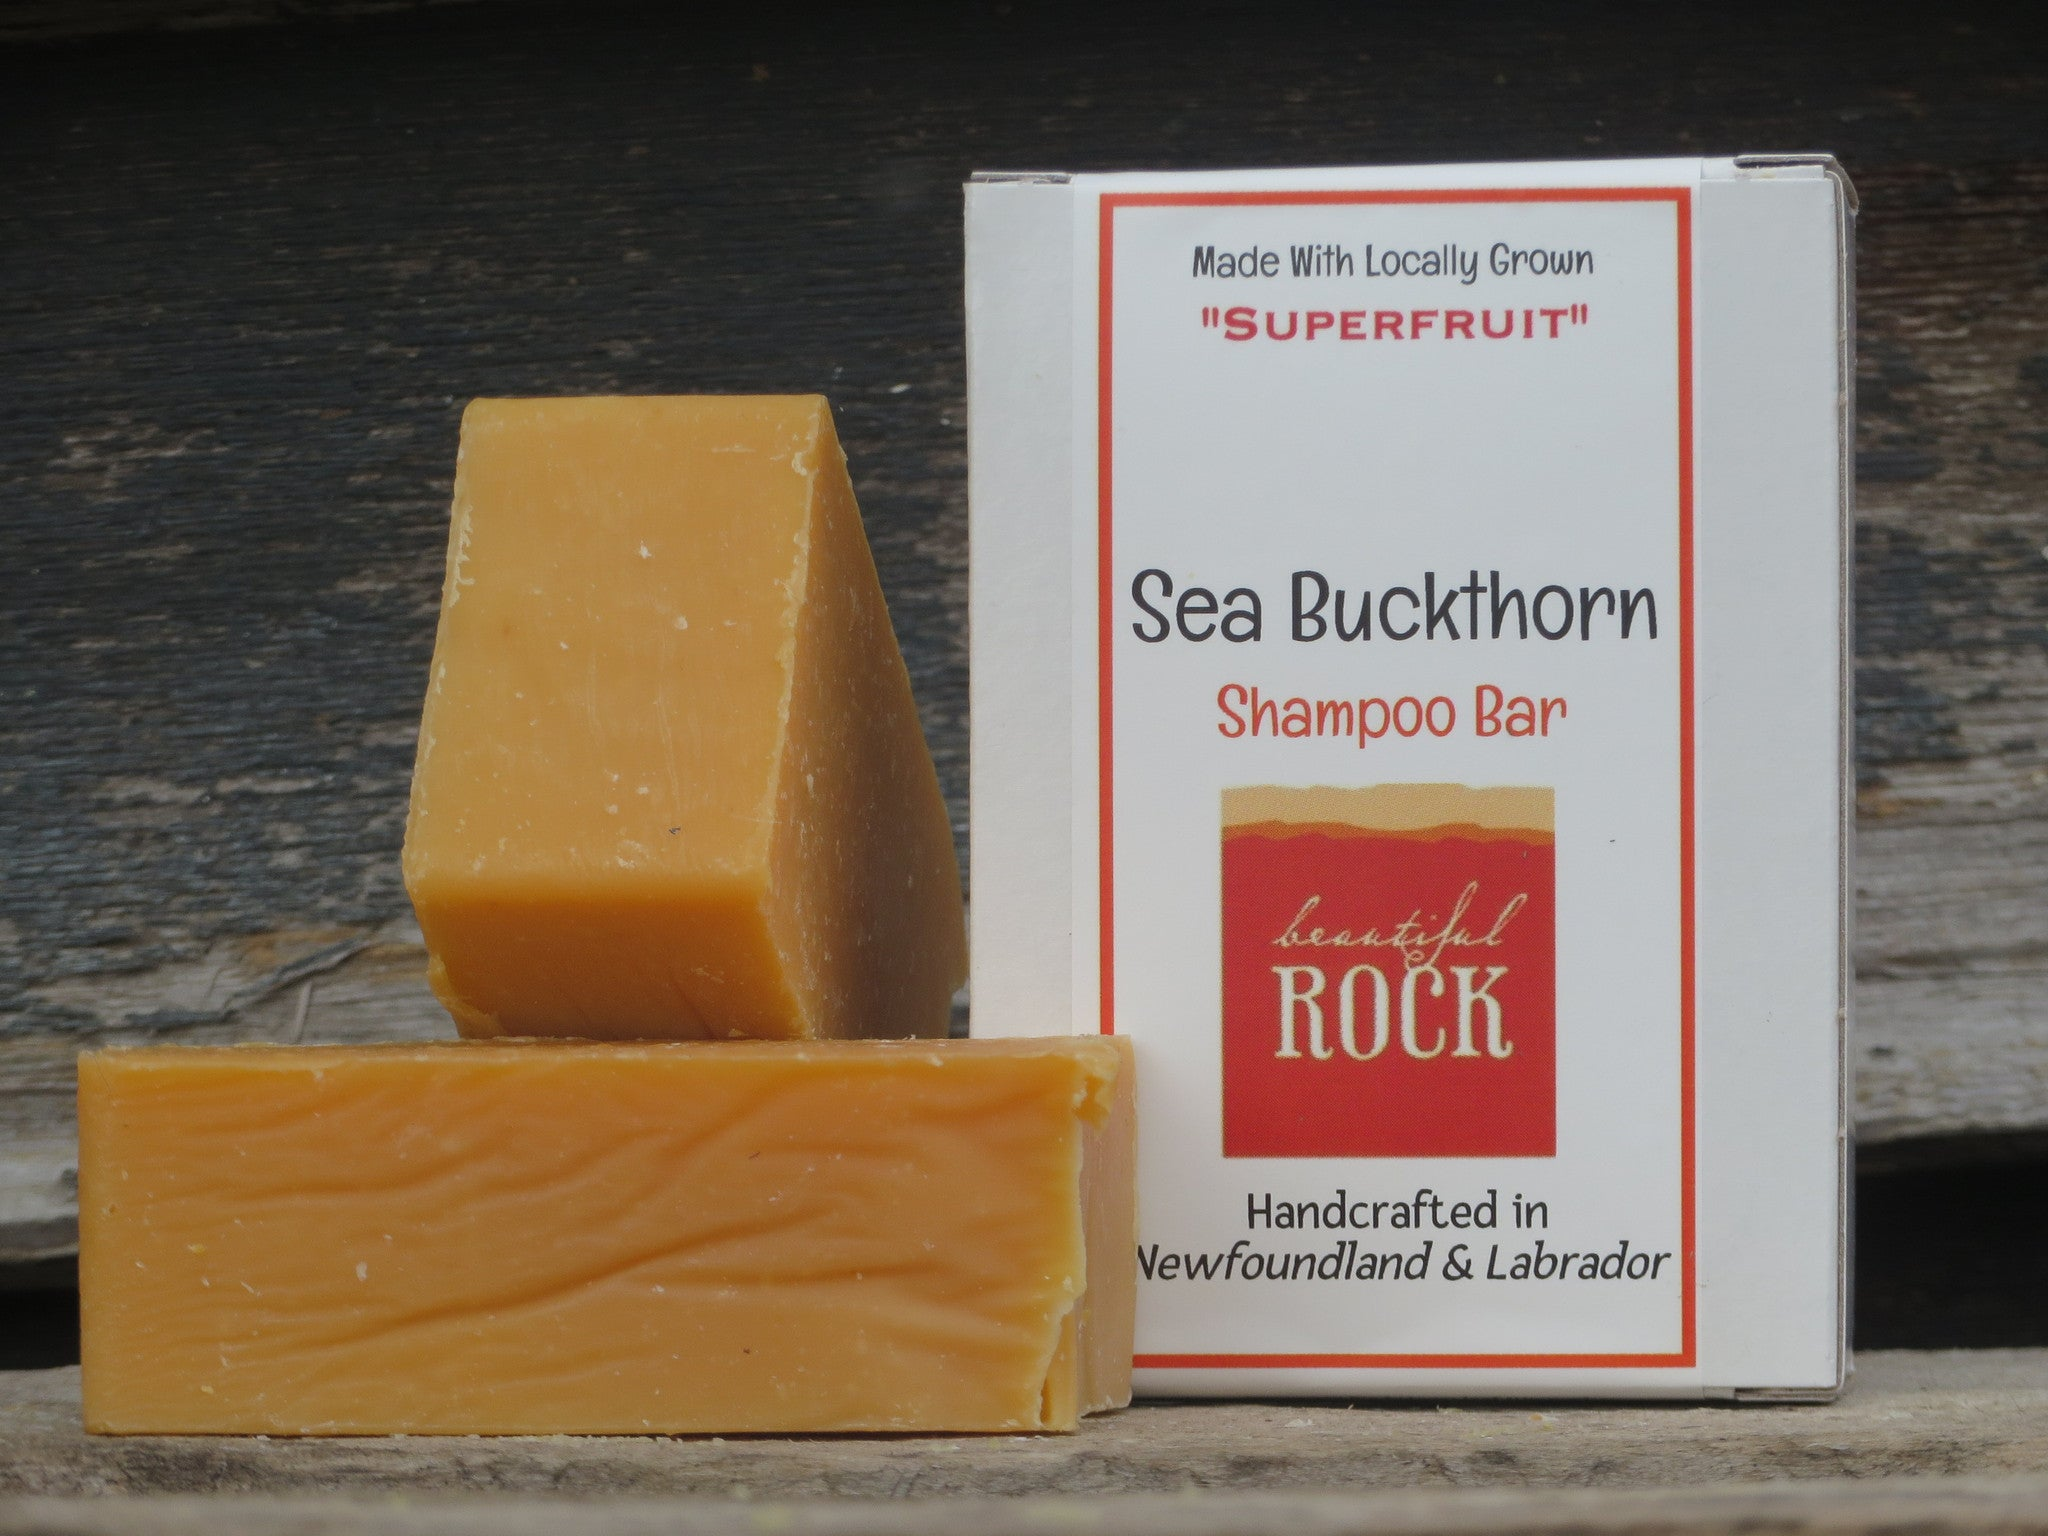 Sea Buckthorn Shampoo Bar